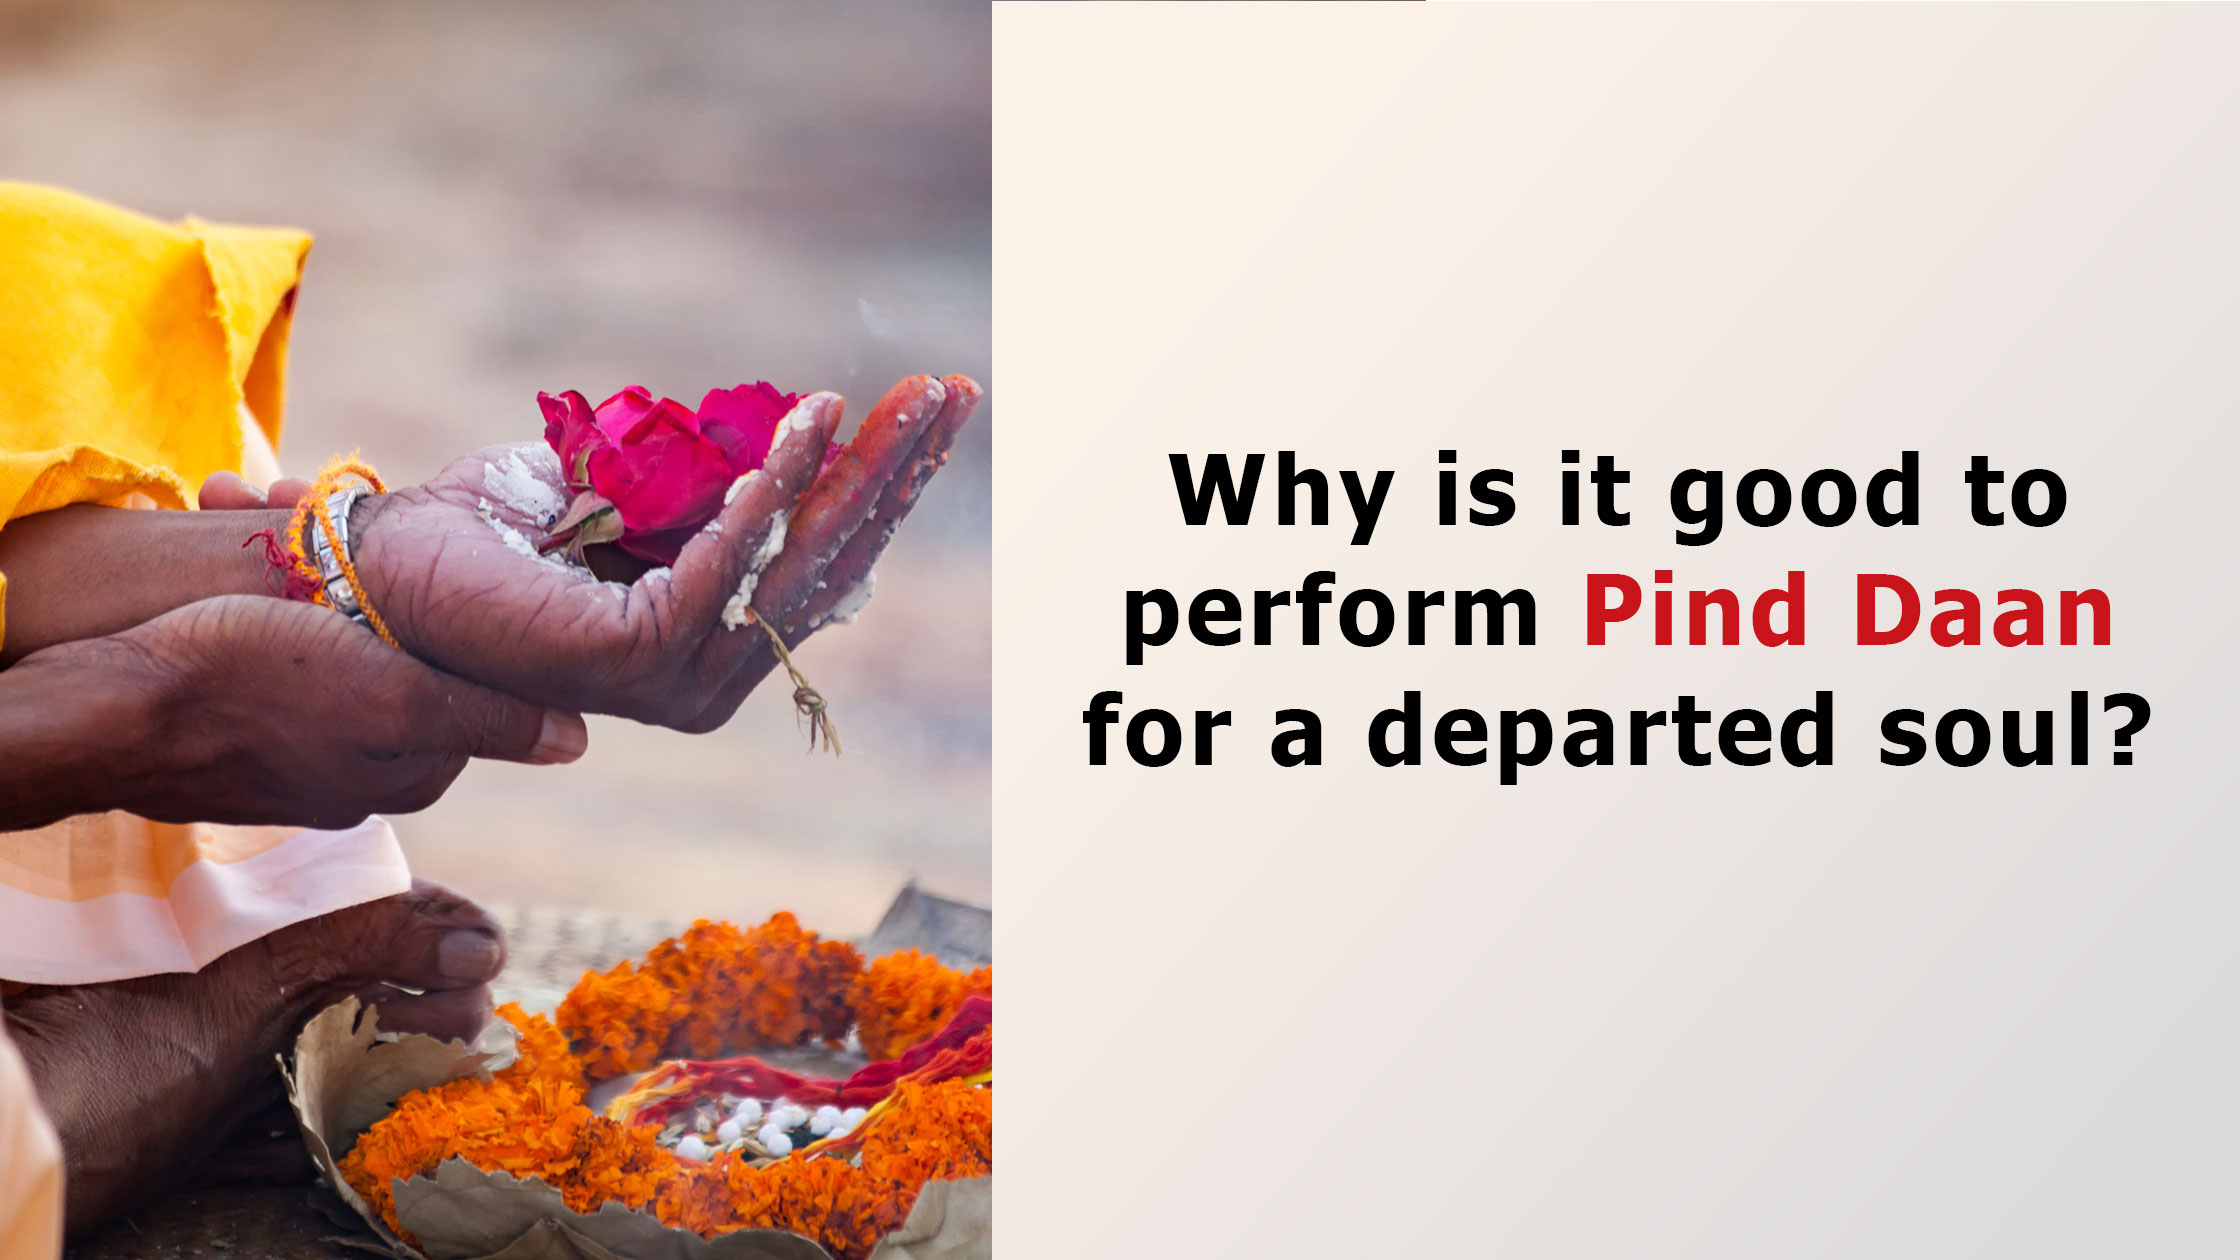 Why is it good to perform Pind Daan for a departed soul?